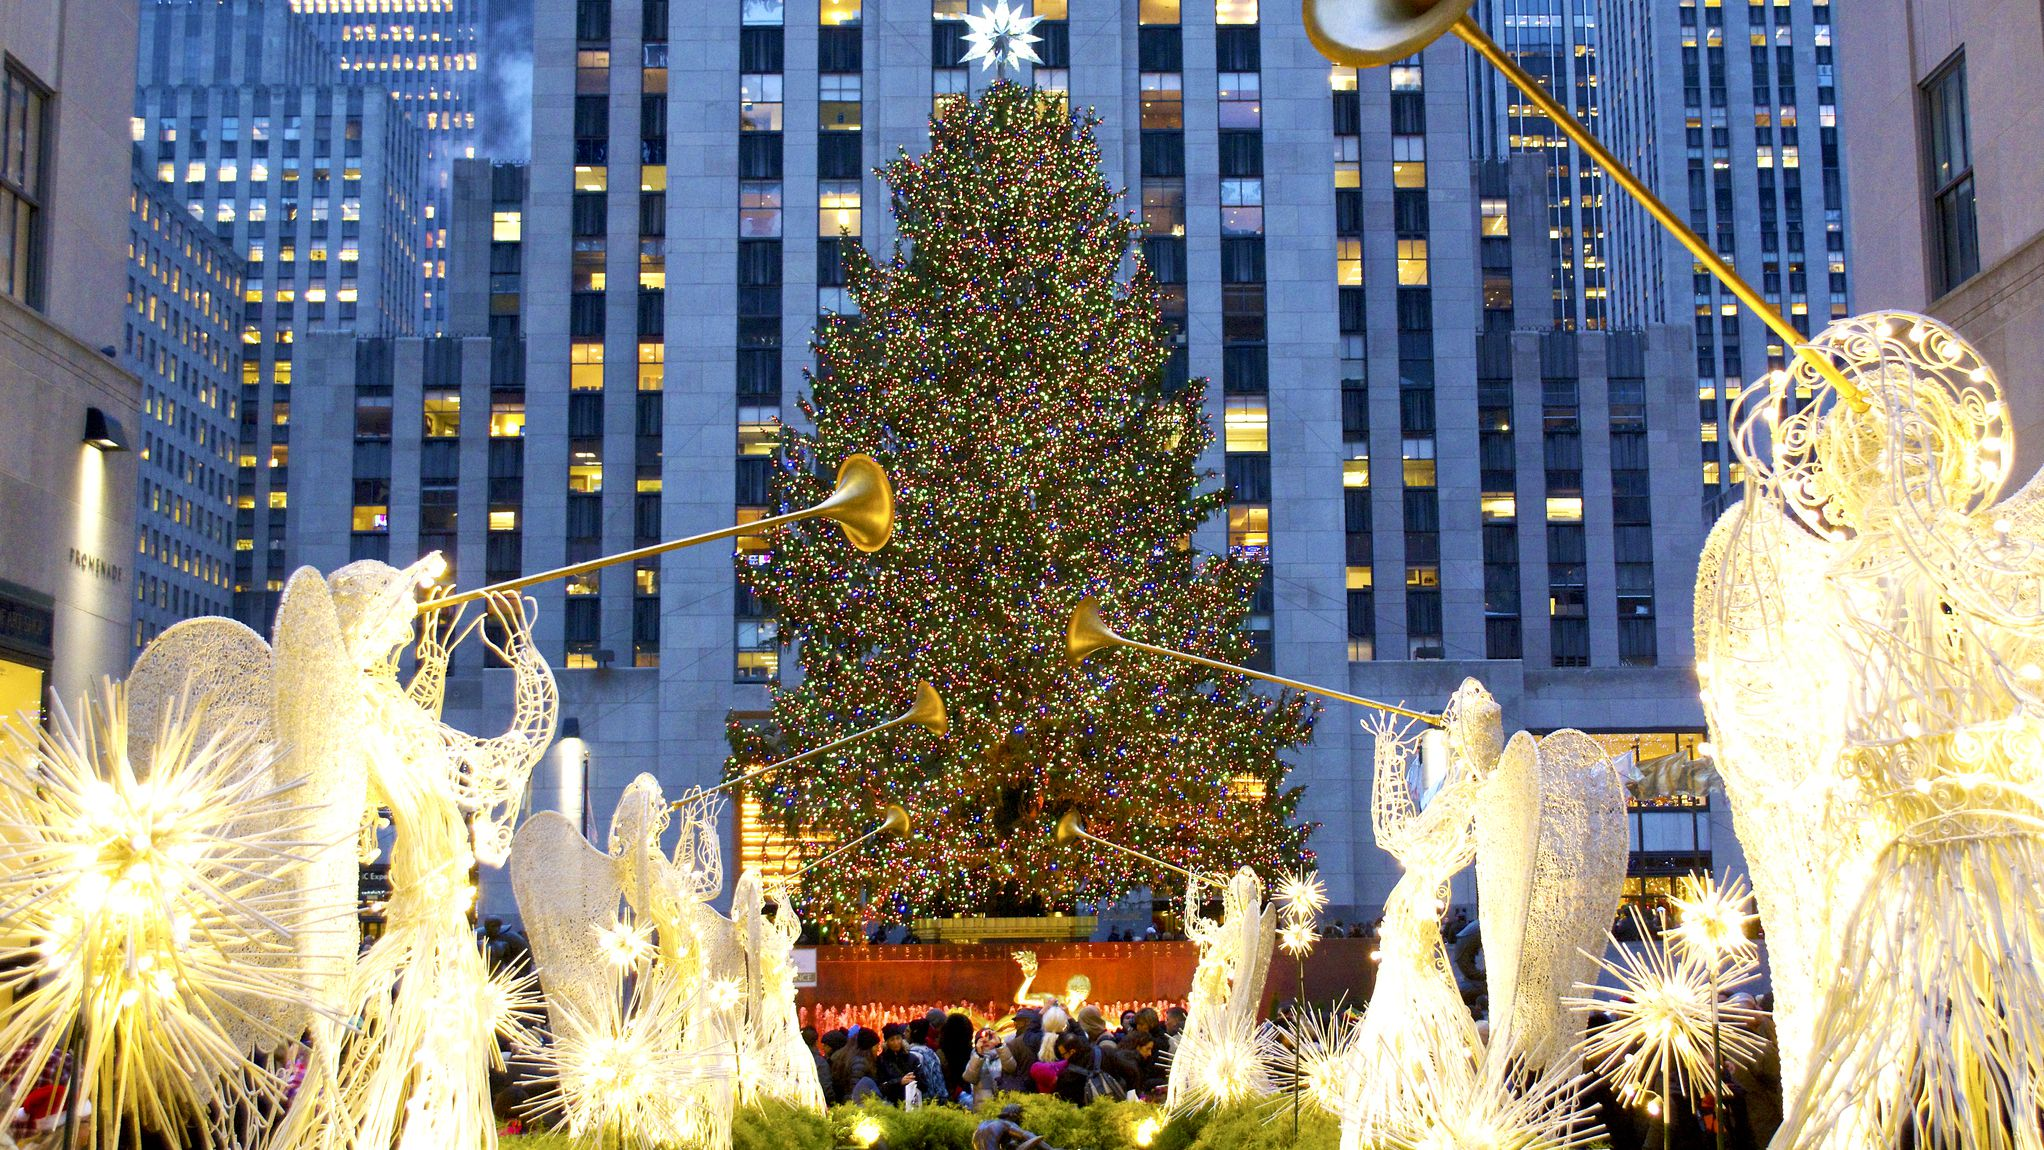 Christmas Tree In Nyc.Guide To Christmas In New York City Events Parades And Lights